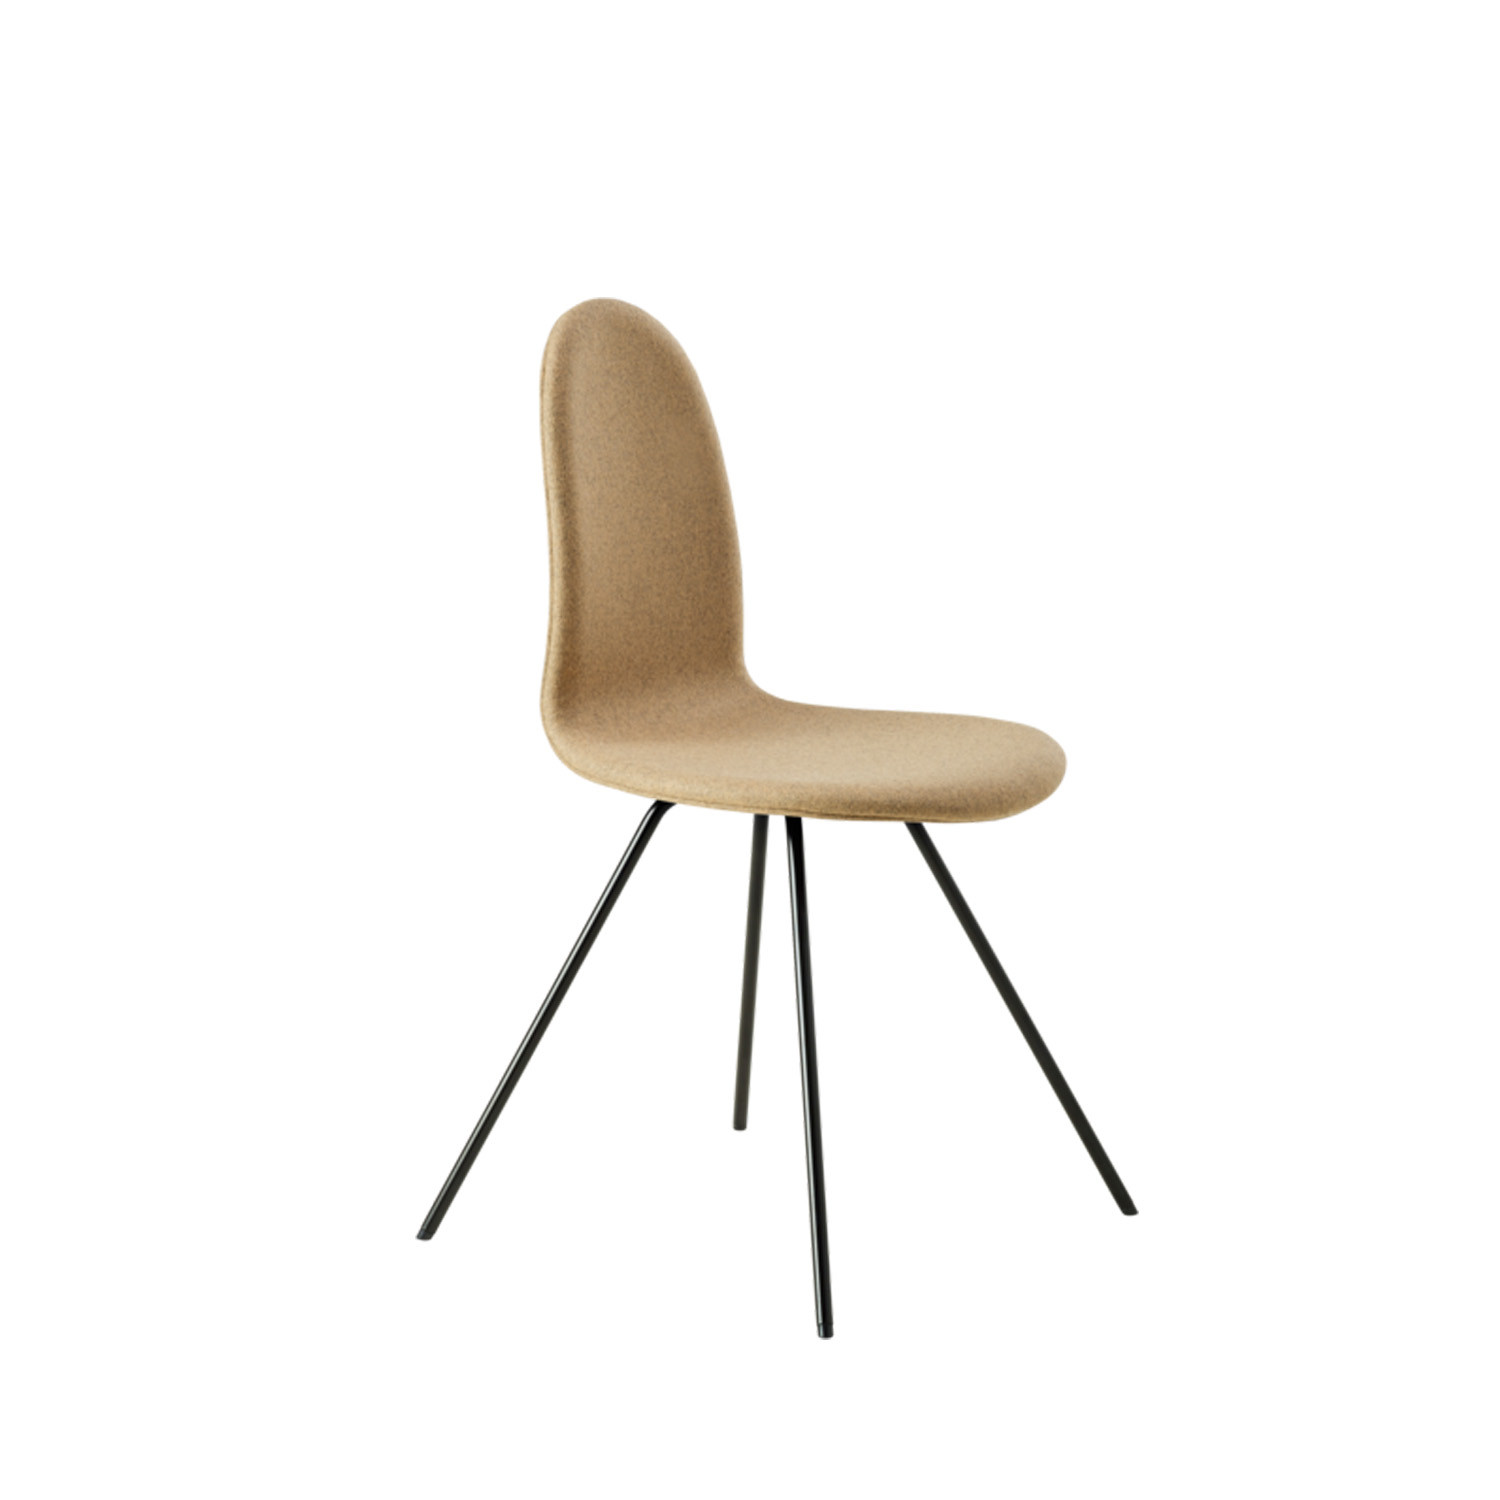 Tongue Chair by Arne Jacobsen